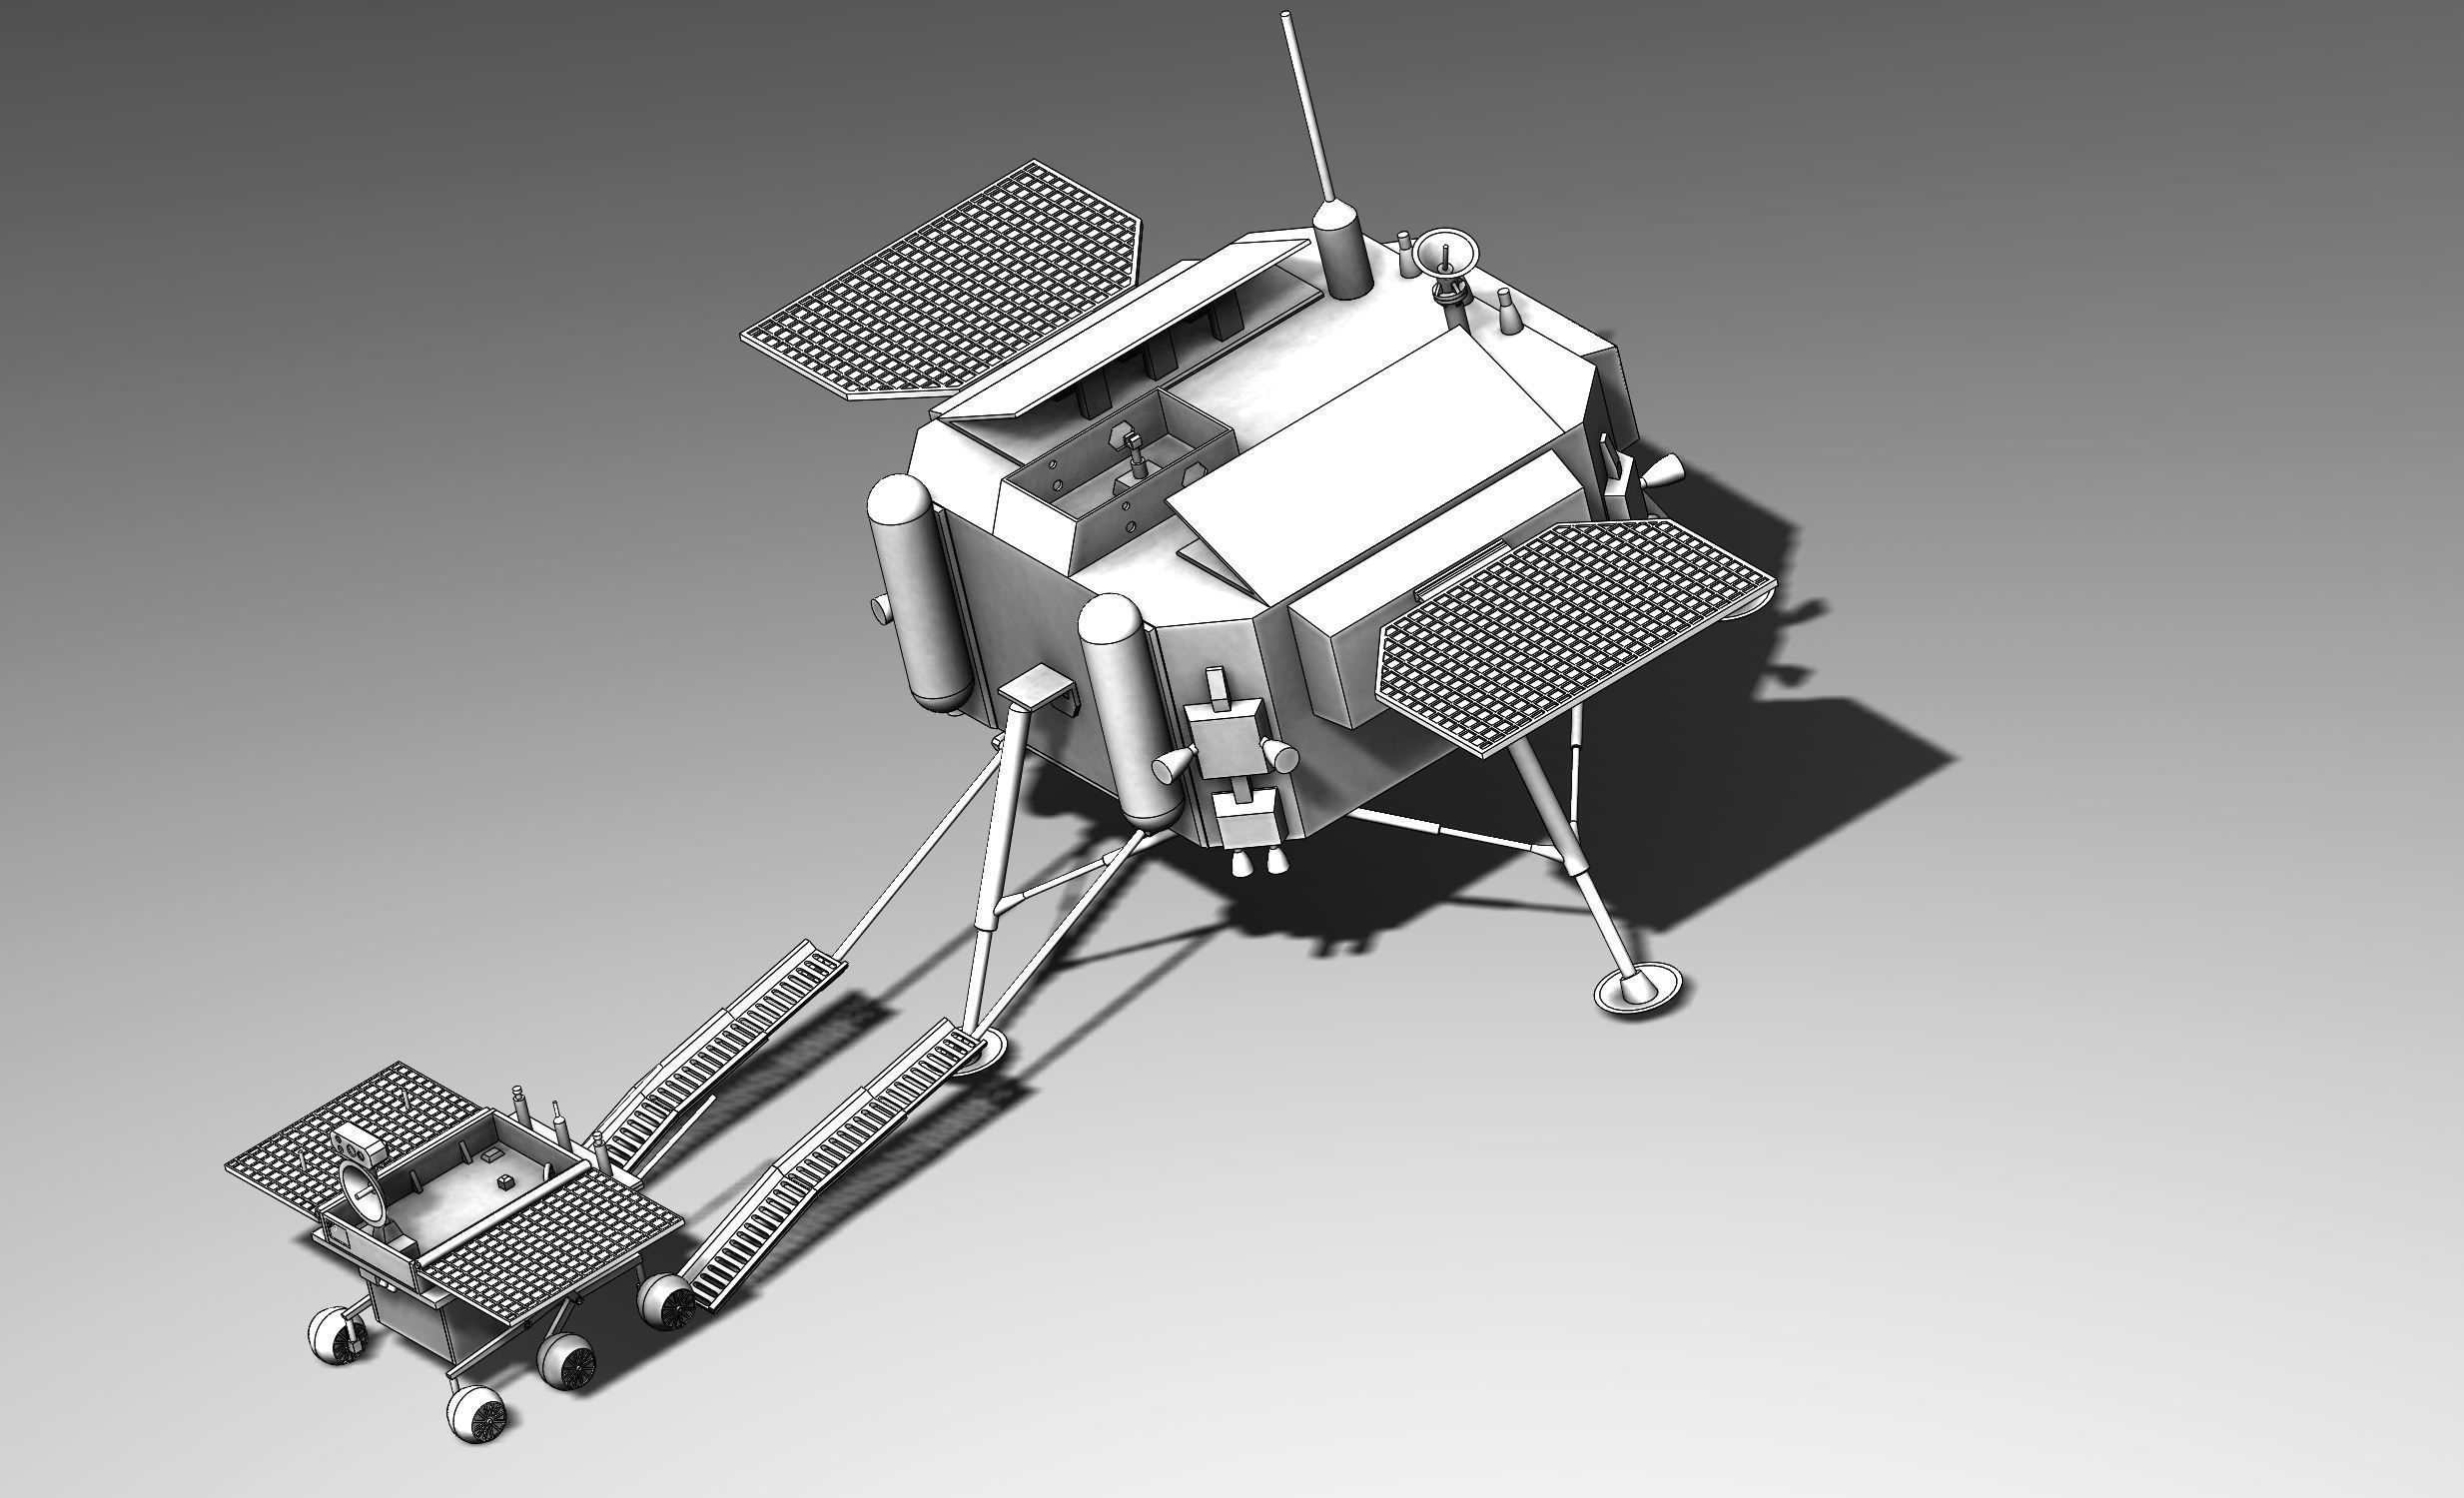 Chinese Jade Coney Lunar Rover System